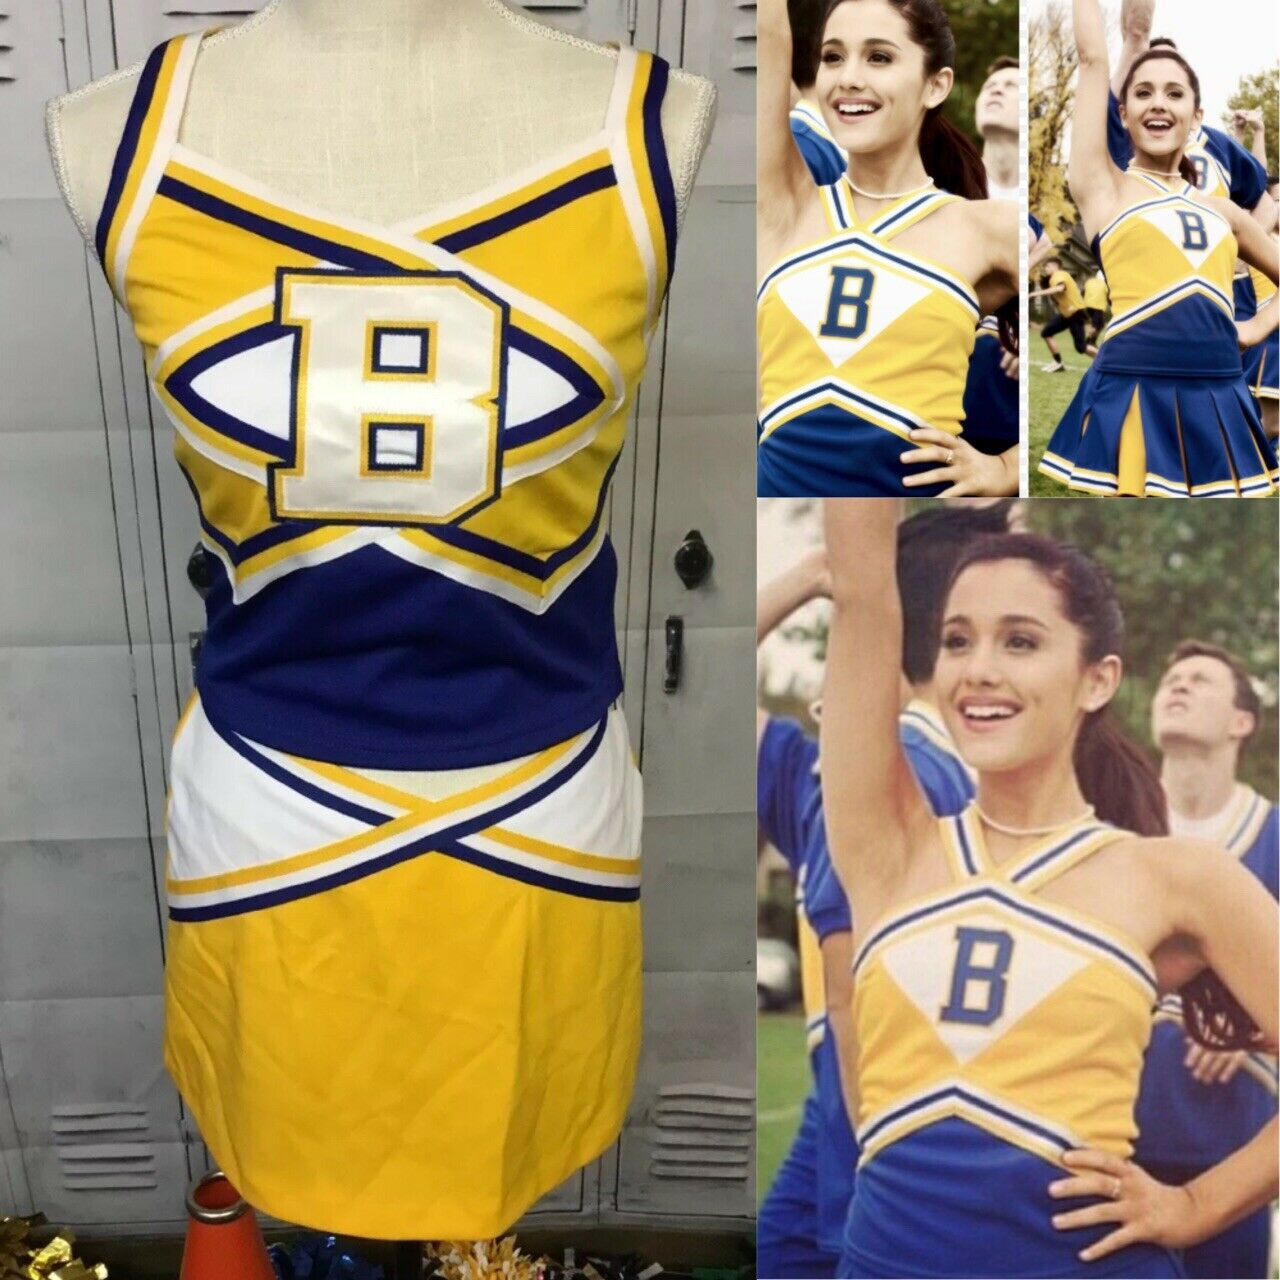 Real  Cheerleading Uniform Vintage Adult S  just for you